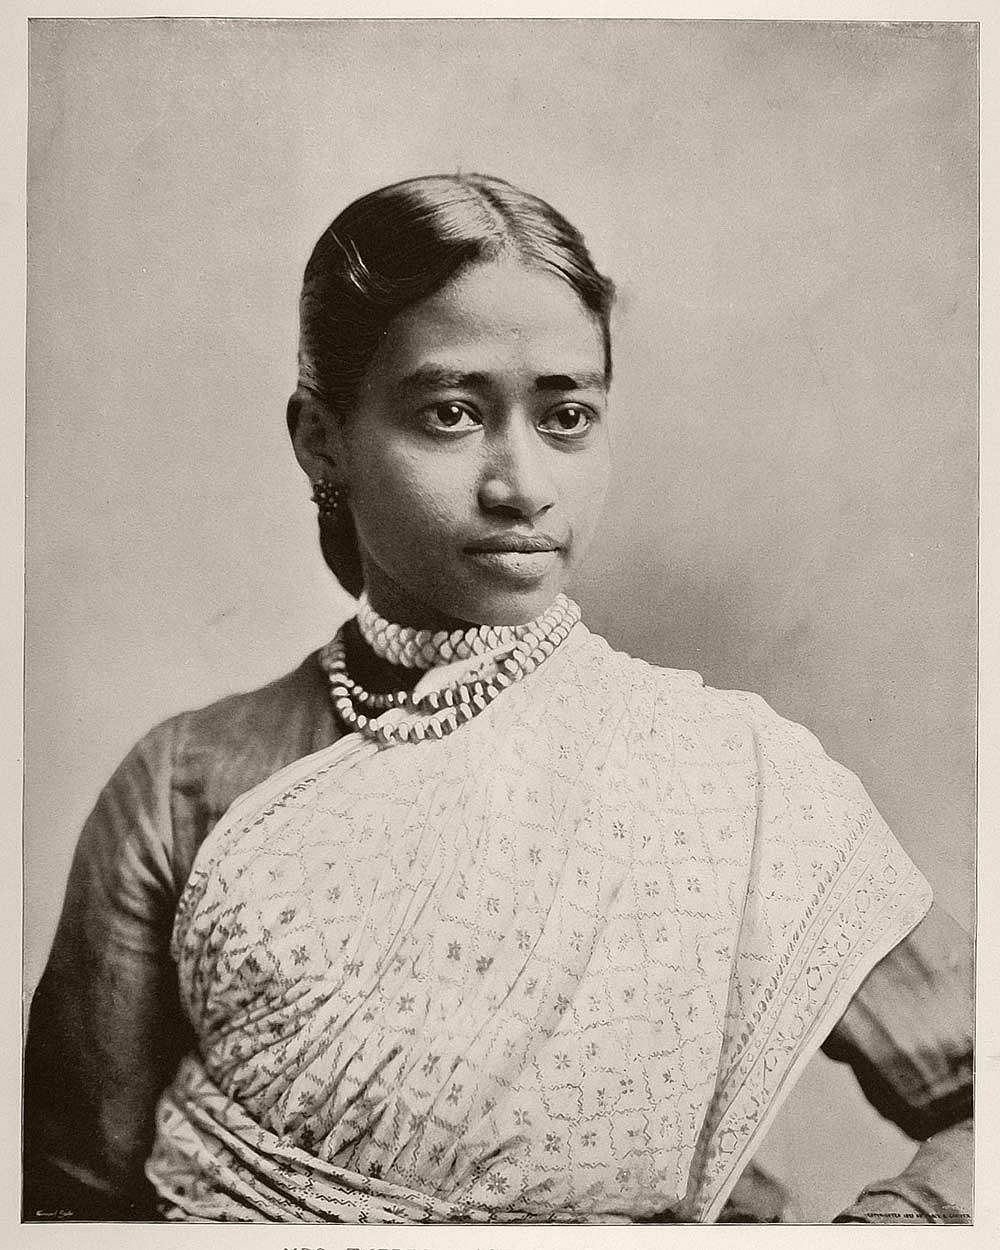 Mrs. Theresa Joseph (the wife of Mr. D. Joseph), an East Indian woman from Ceylon (now known as Sri Lanka).